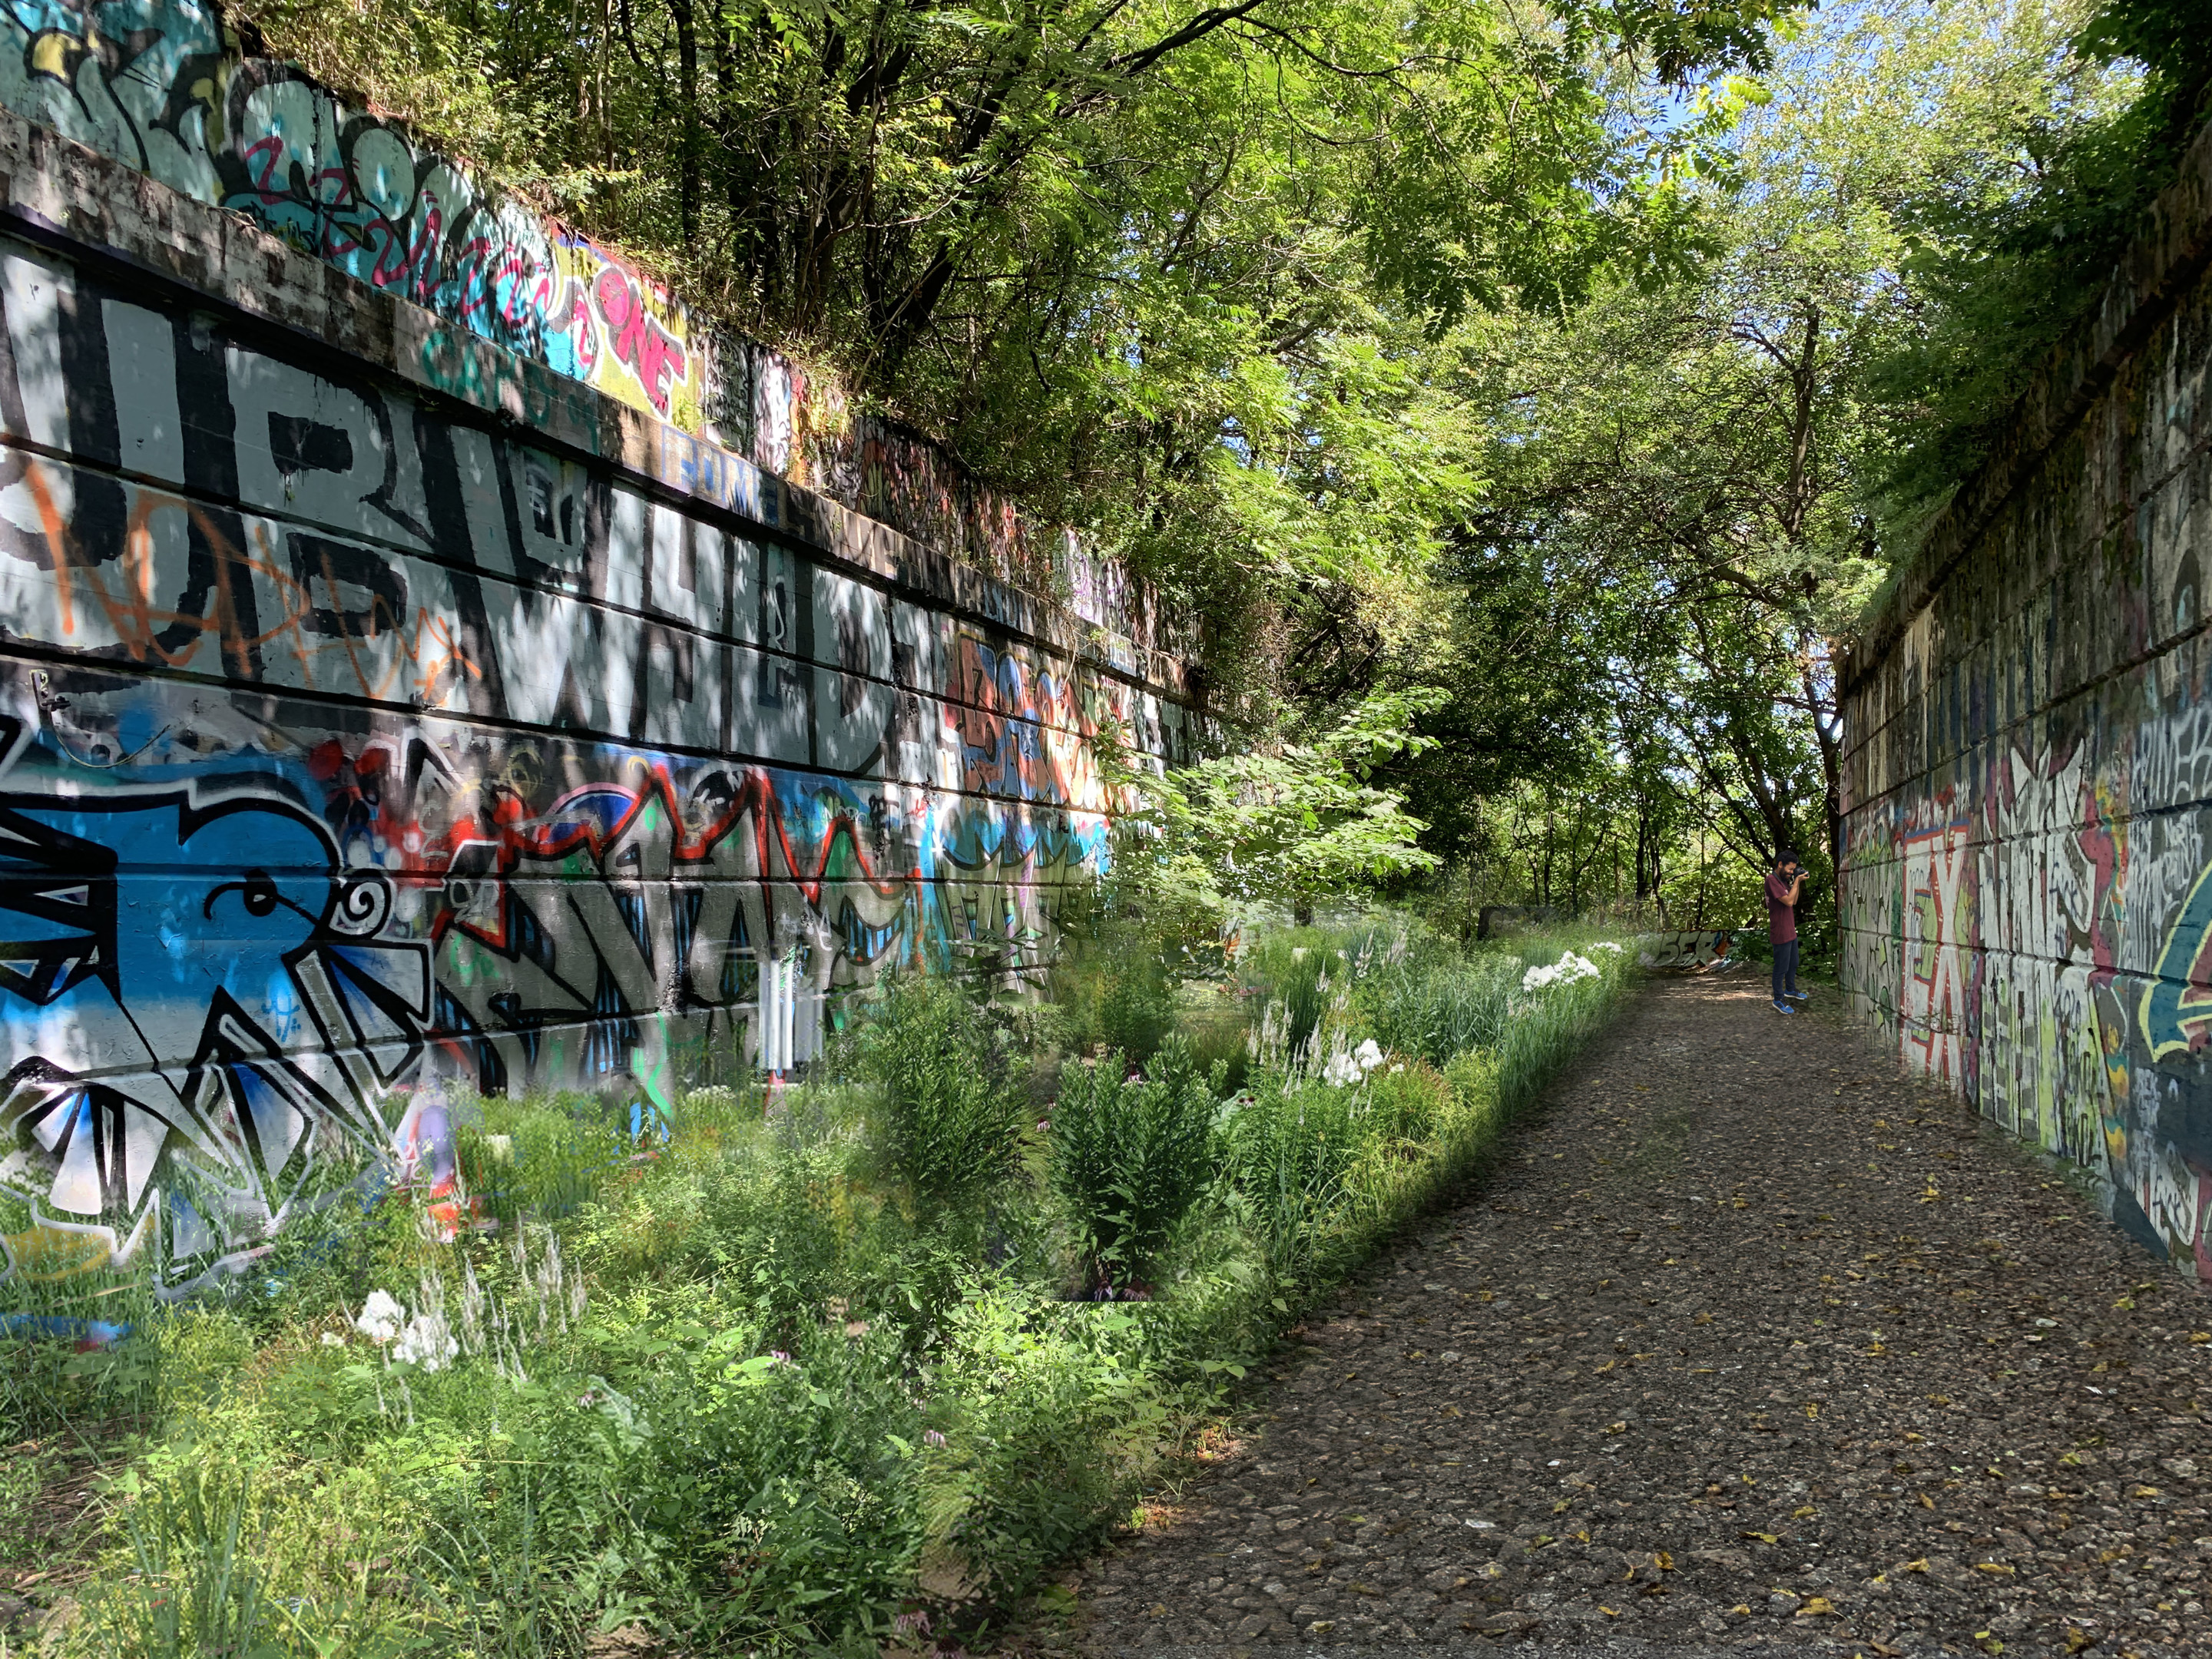 Rendering of a throughway with graffiti